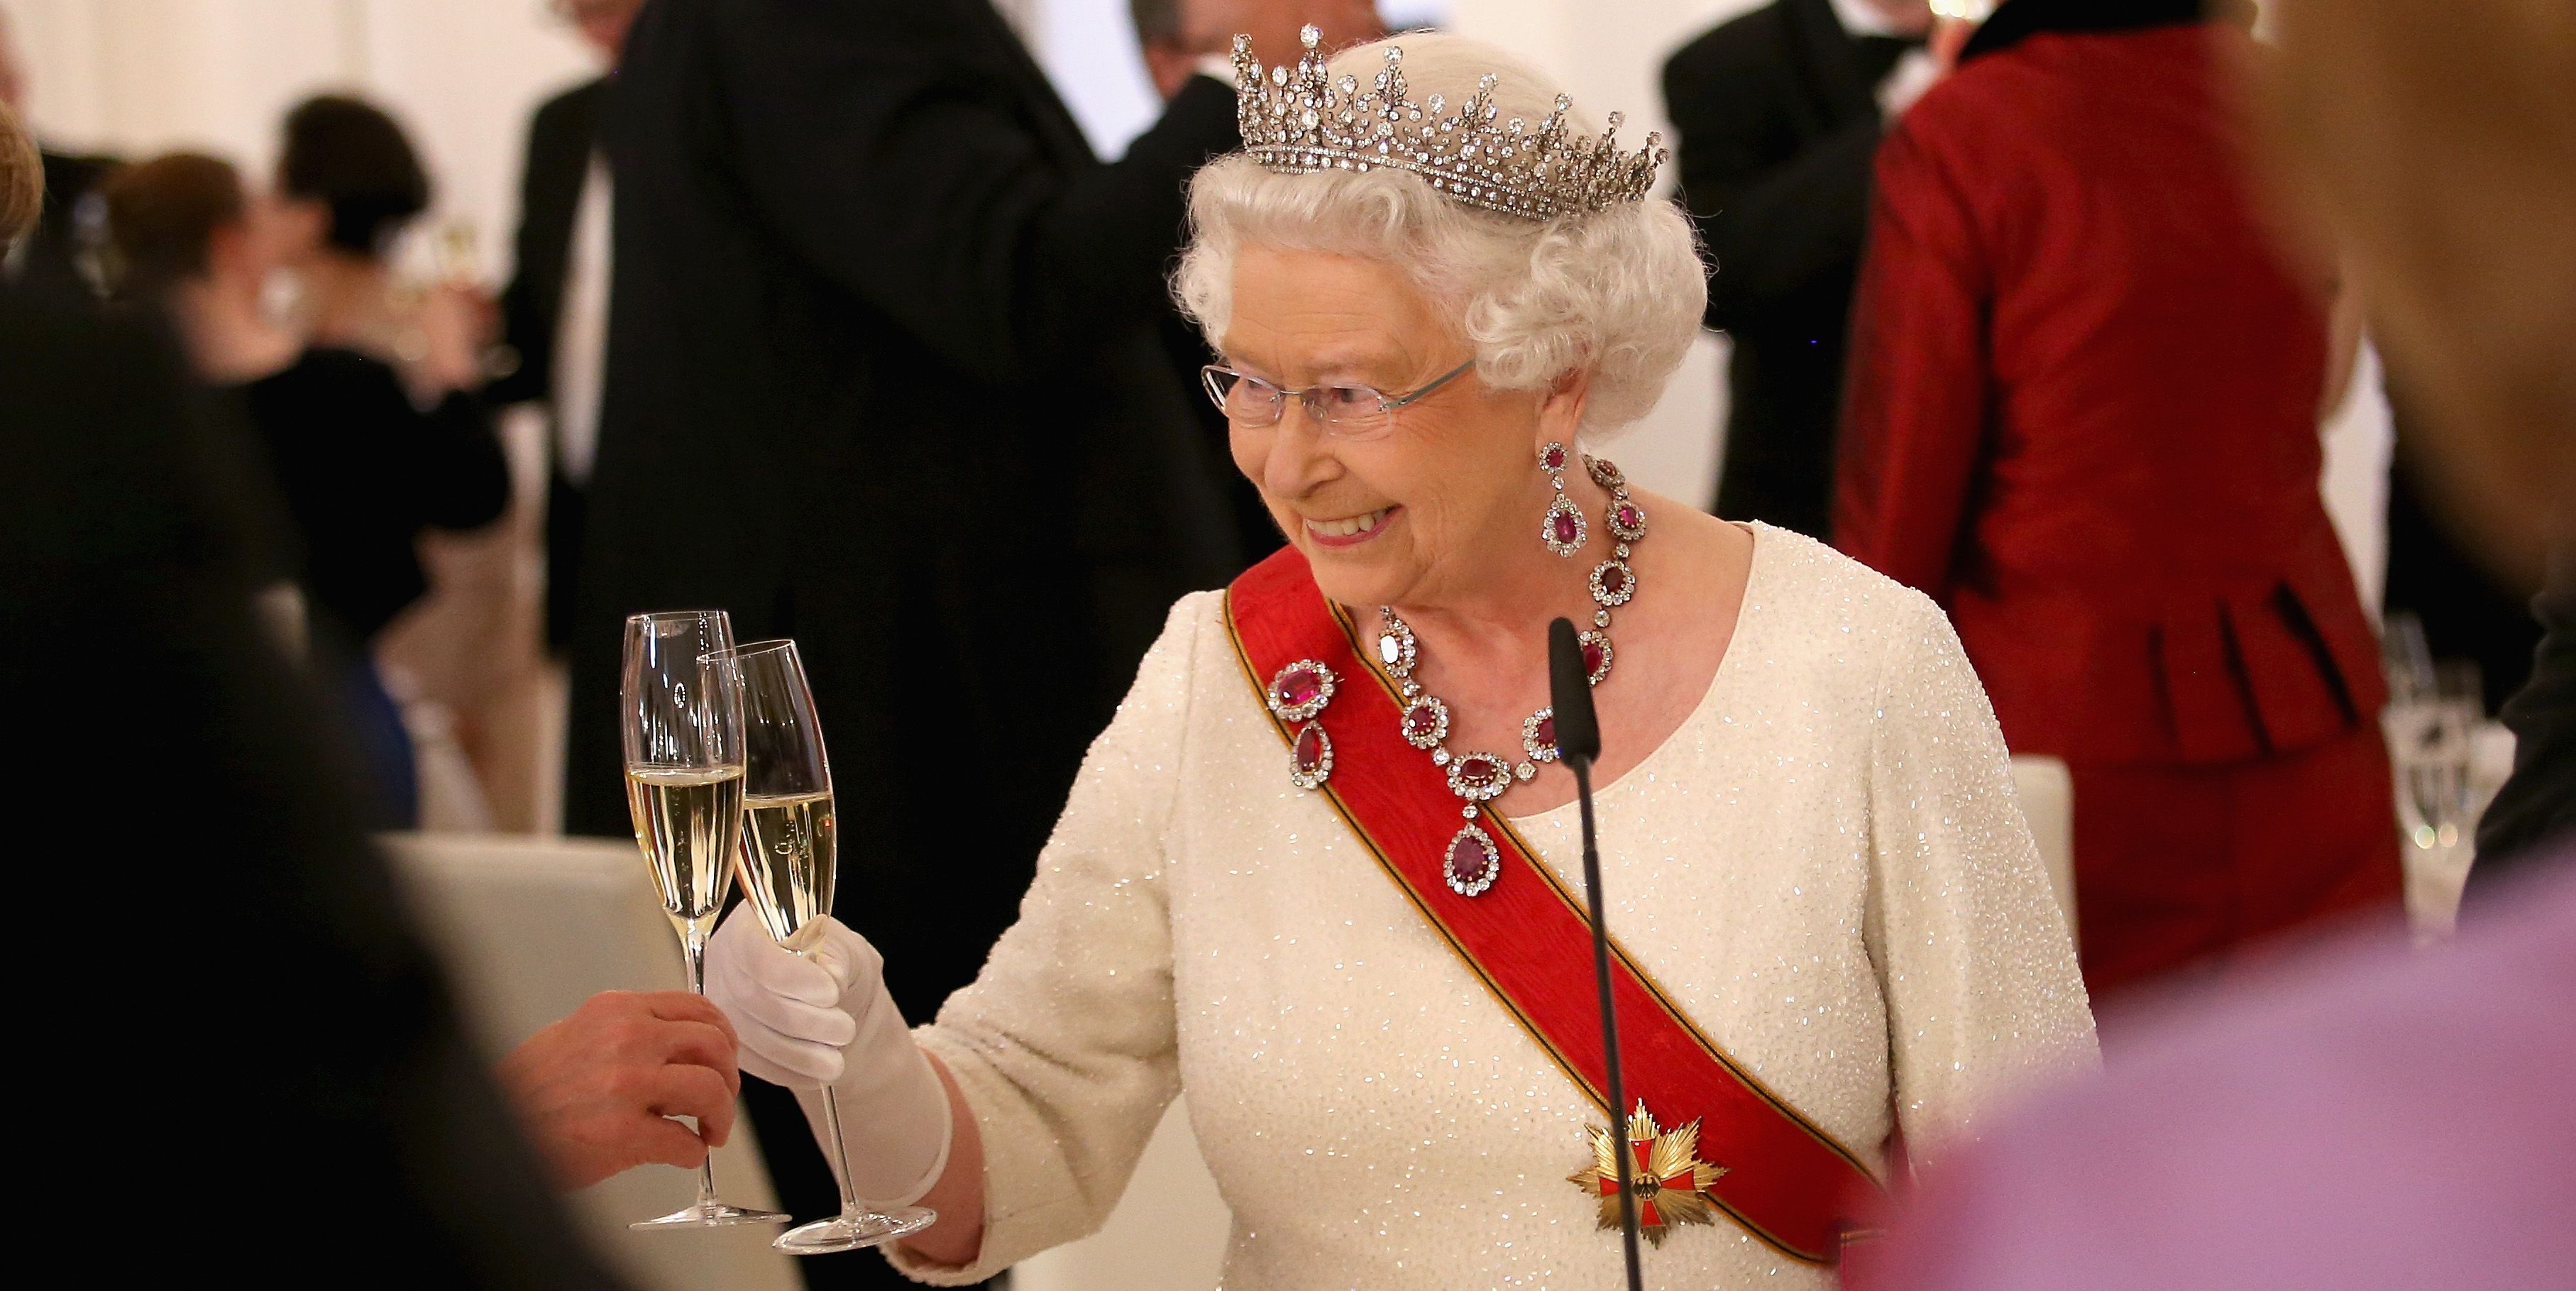 No, The Queen Doesn't Drink Four Cocktails Every Day